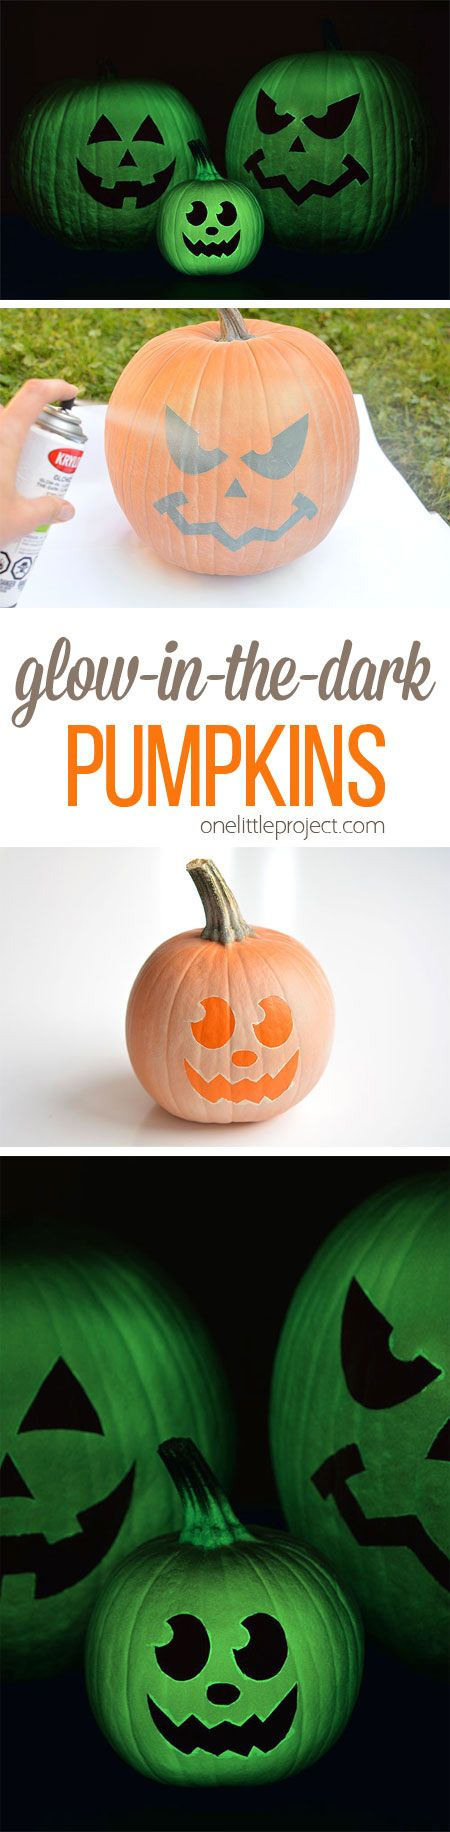 And fashion magic halloween pumpkins carving and decorating ideas - Glow In The Dark Pumpkins Ideas For Halloweenhalloween